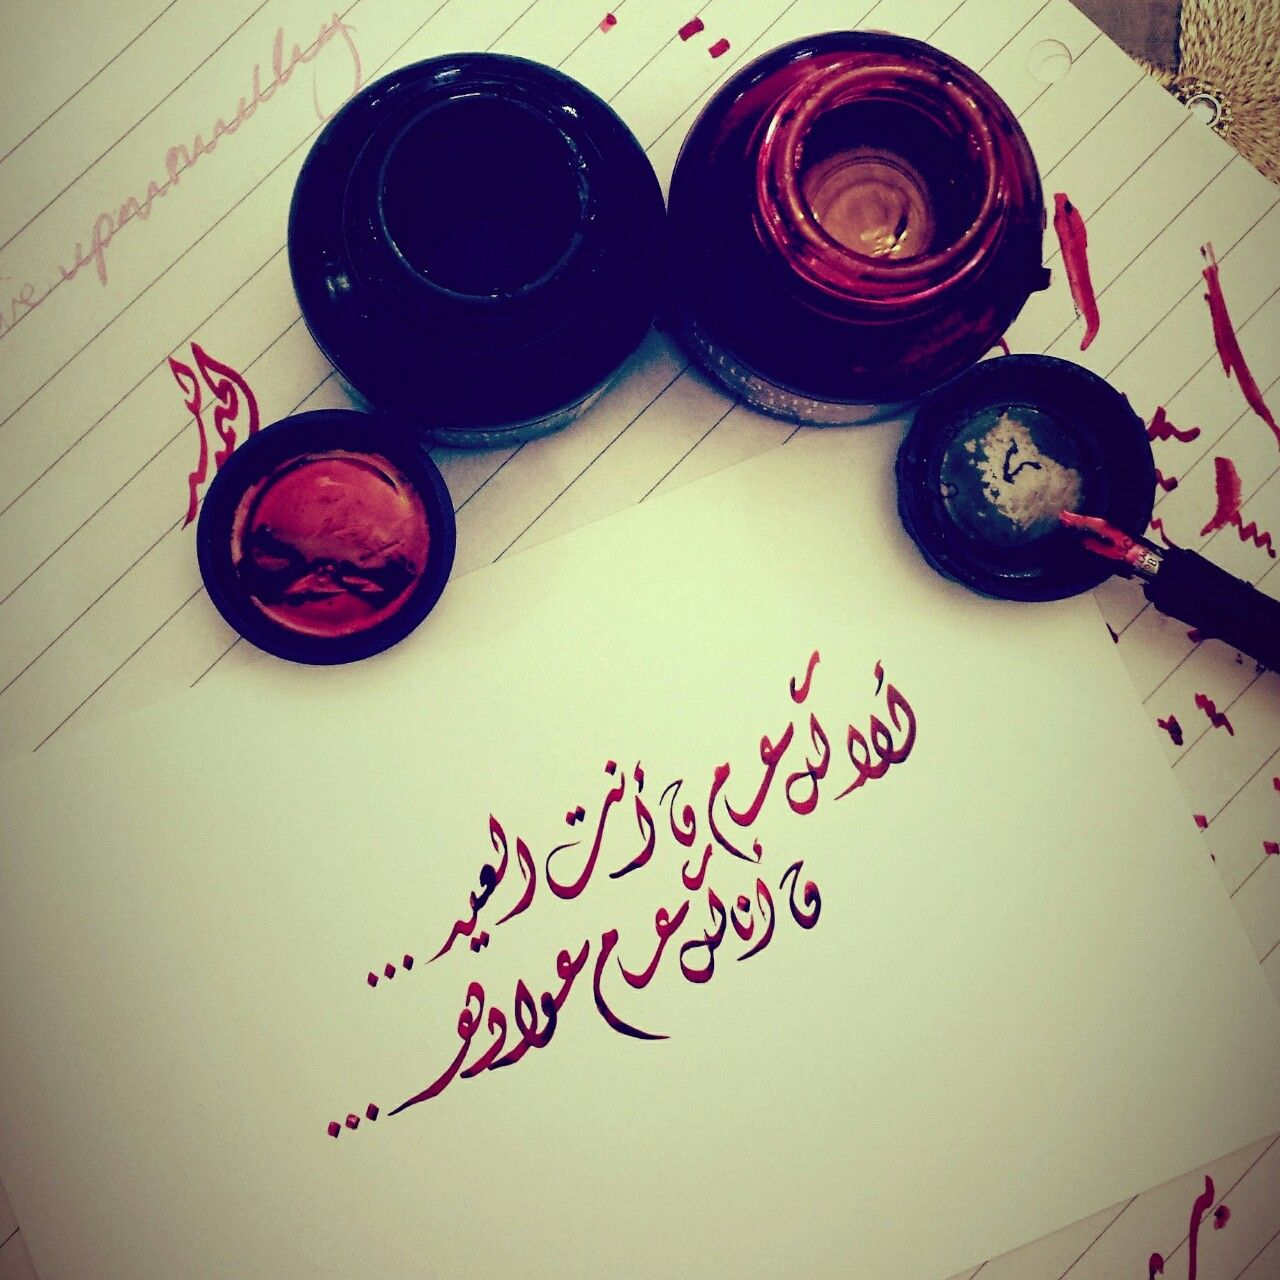 Calligraphy Gharbiya ألا كل عام و انت العيد وانا كل عام و عواده And Every Year You Are My Eid Celebration And Me Every Year I Am Your Return